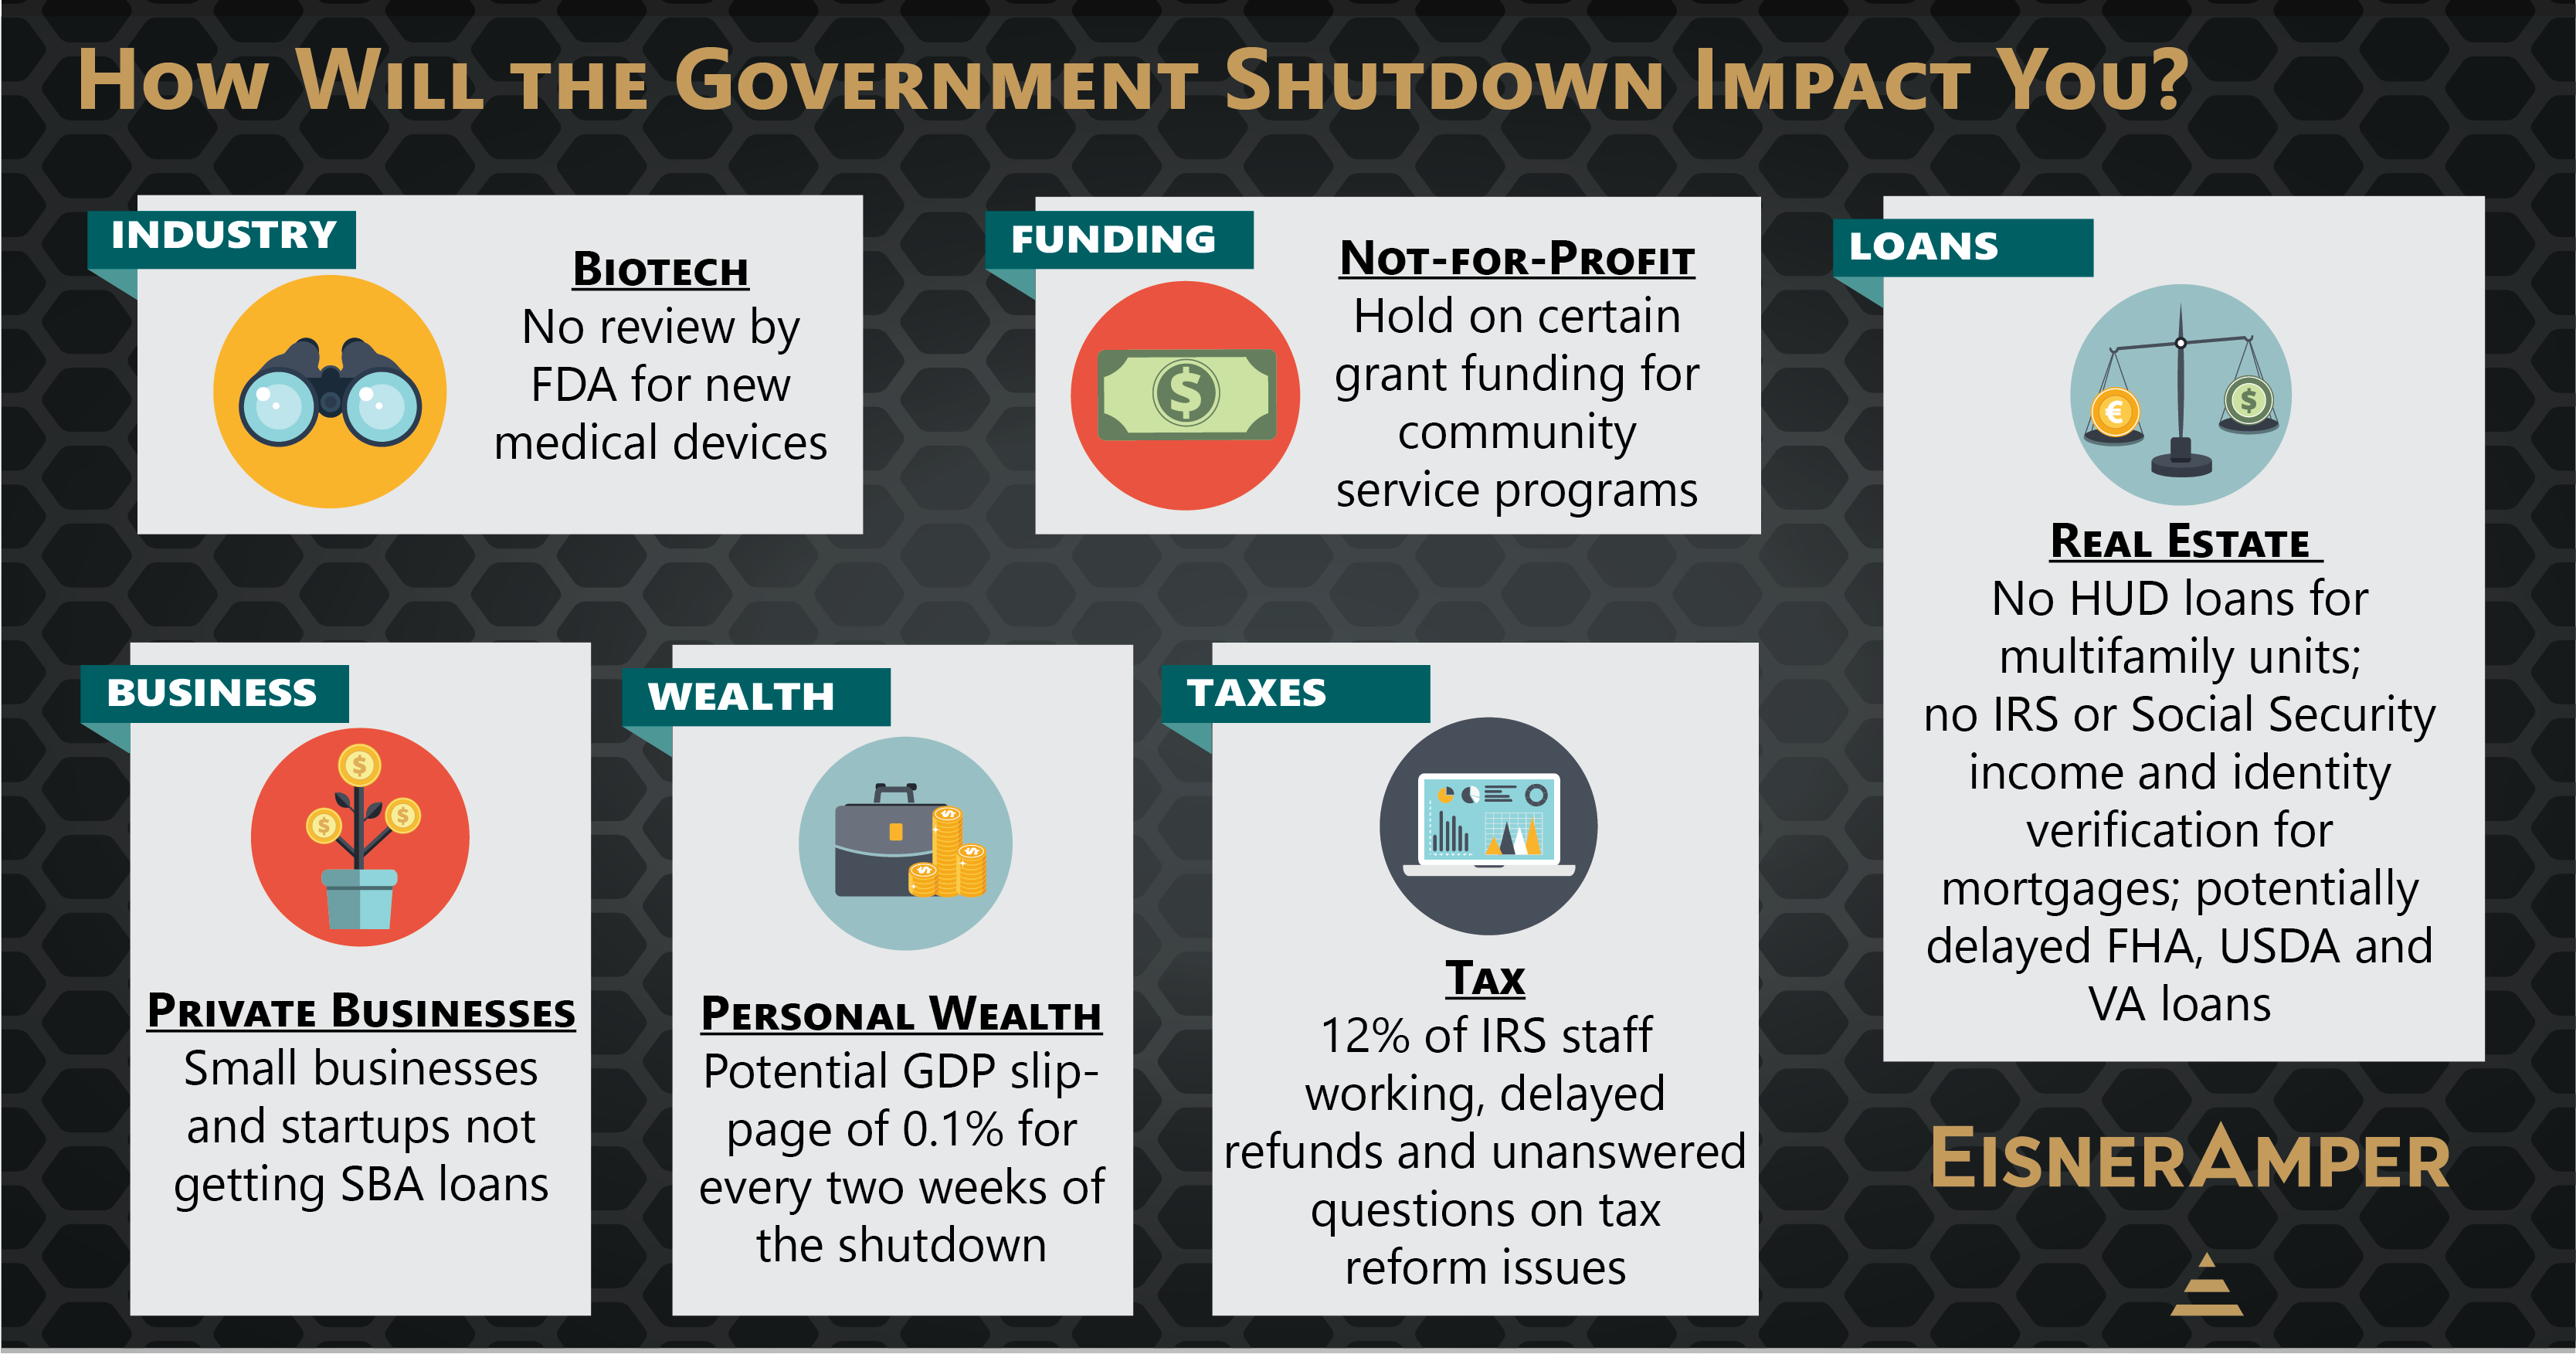 How will the government shutdown impact you